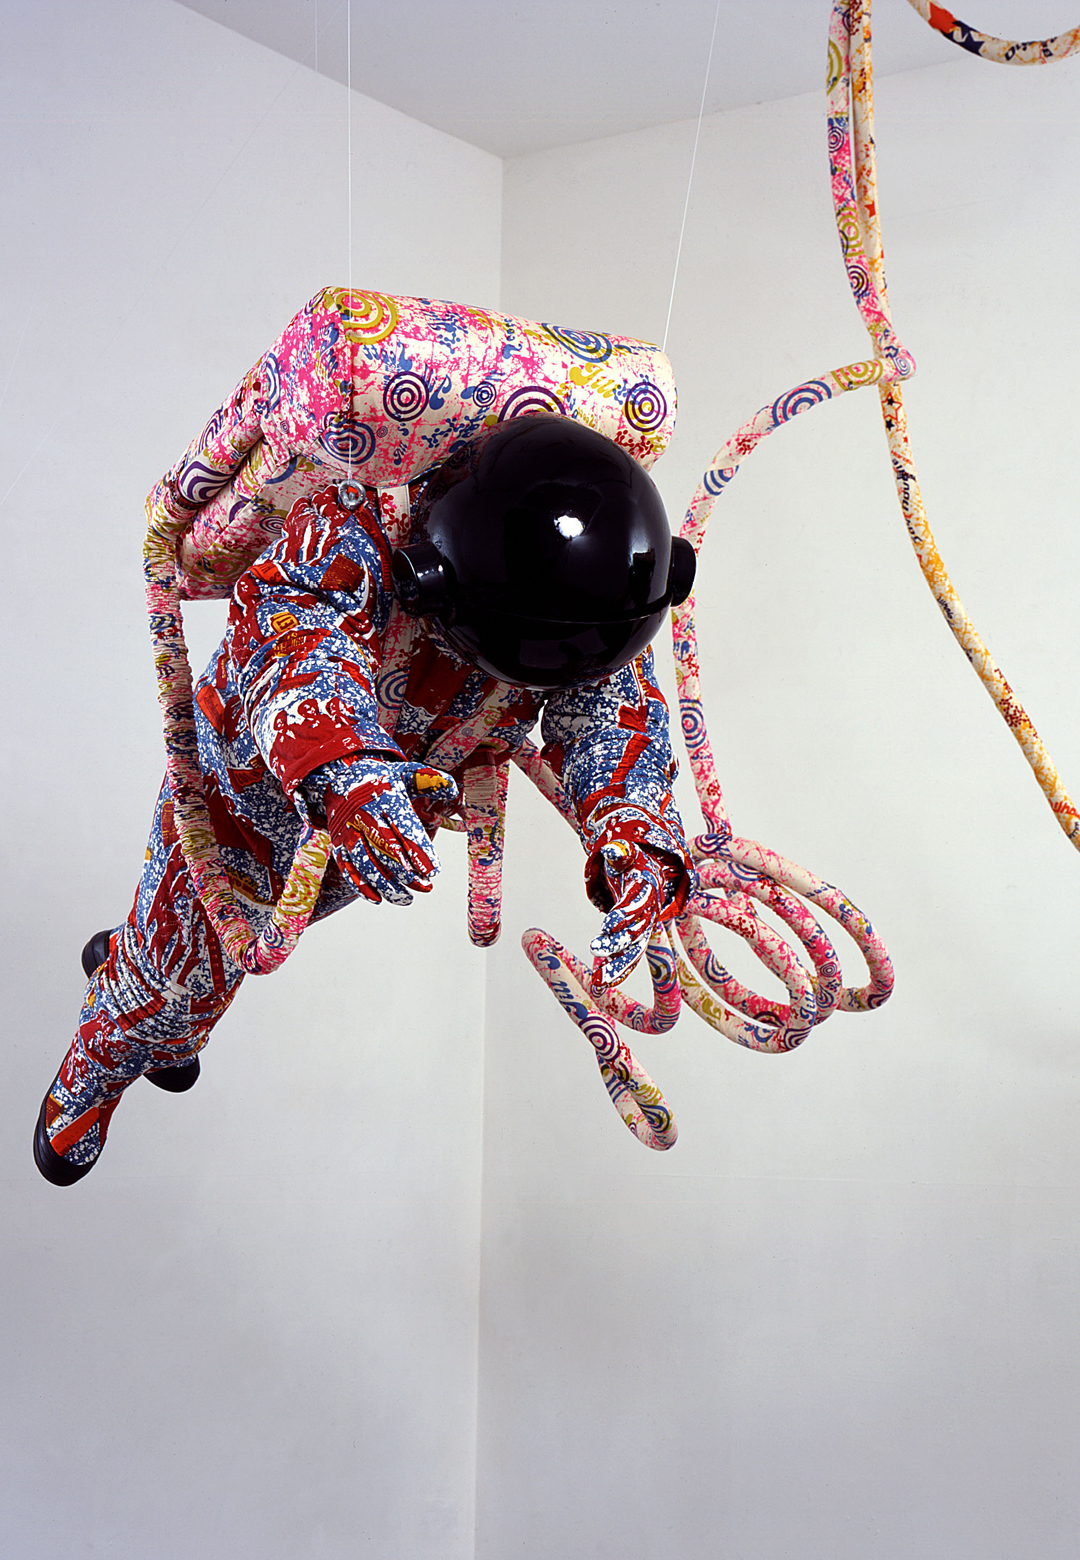 Yinka Shonibare CBE, Spacewalk, 2002, Screen printed cotton fabric, fiberglass, plywood, vinyl, plastic, steel, Stephen Friedman Gallery, London | Fly Me to the Moon. The Lunar Landing, 50 Years Later | Museum der Moderne Salzburg | STIR